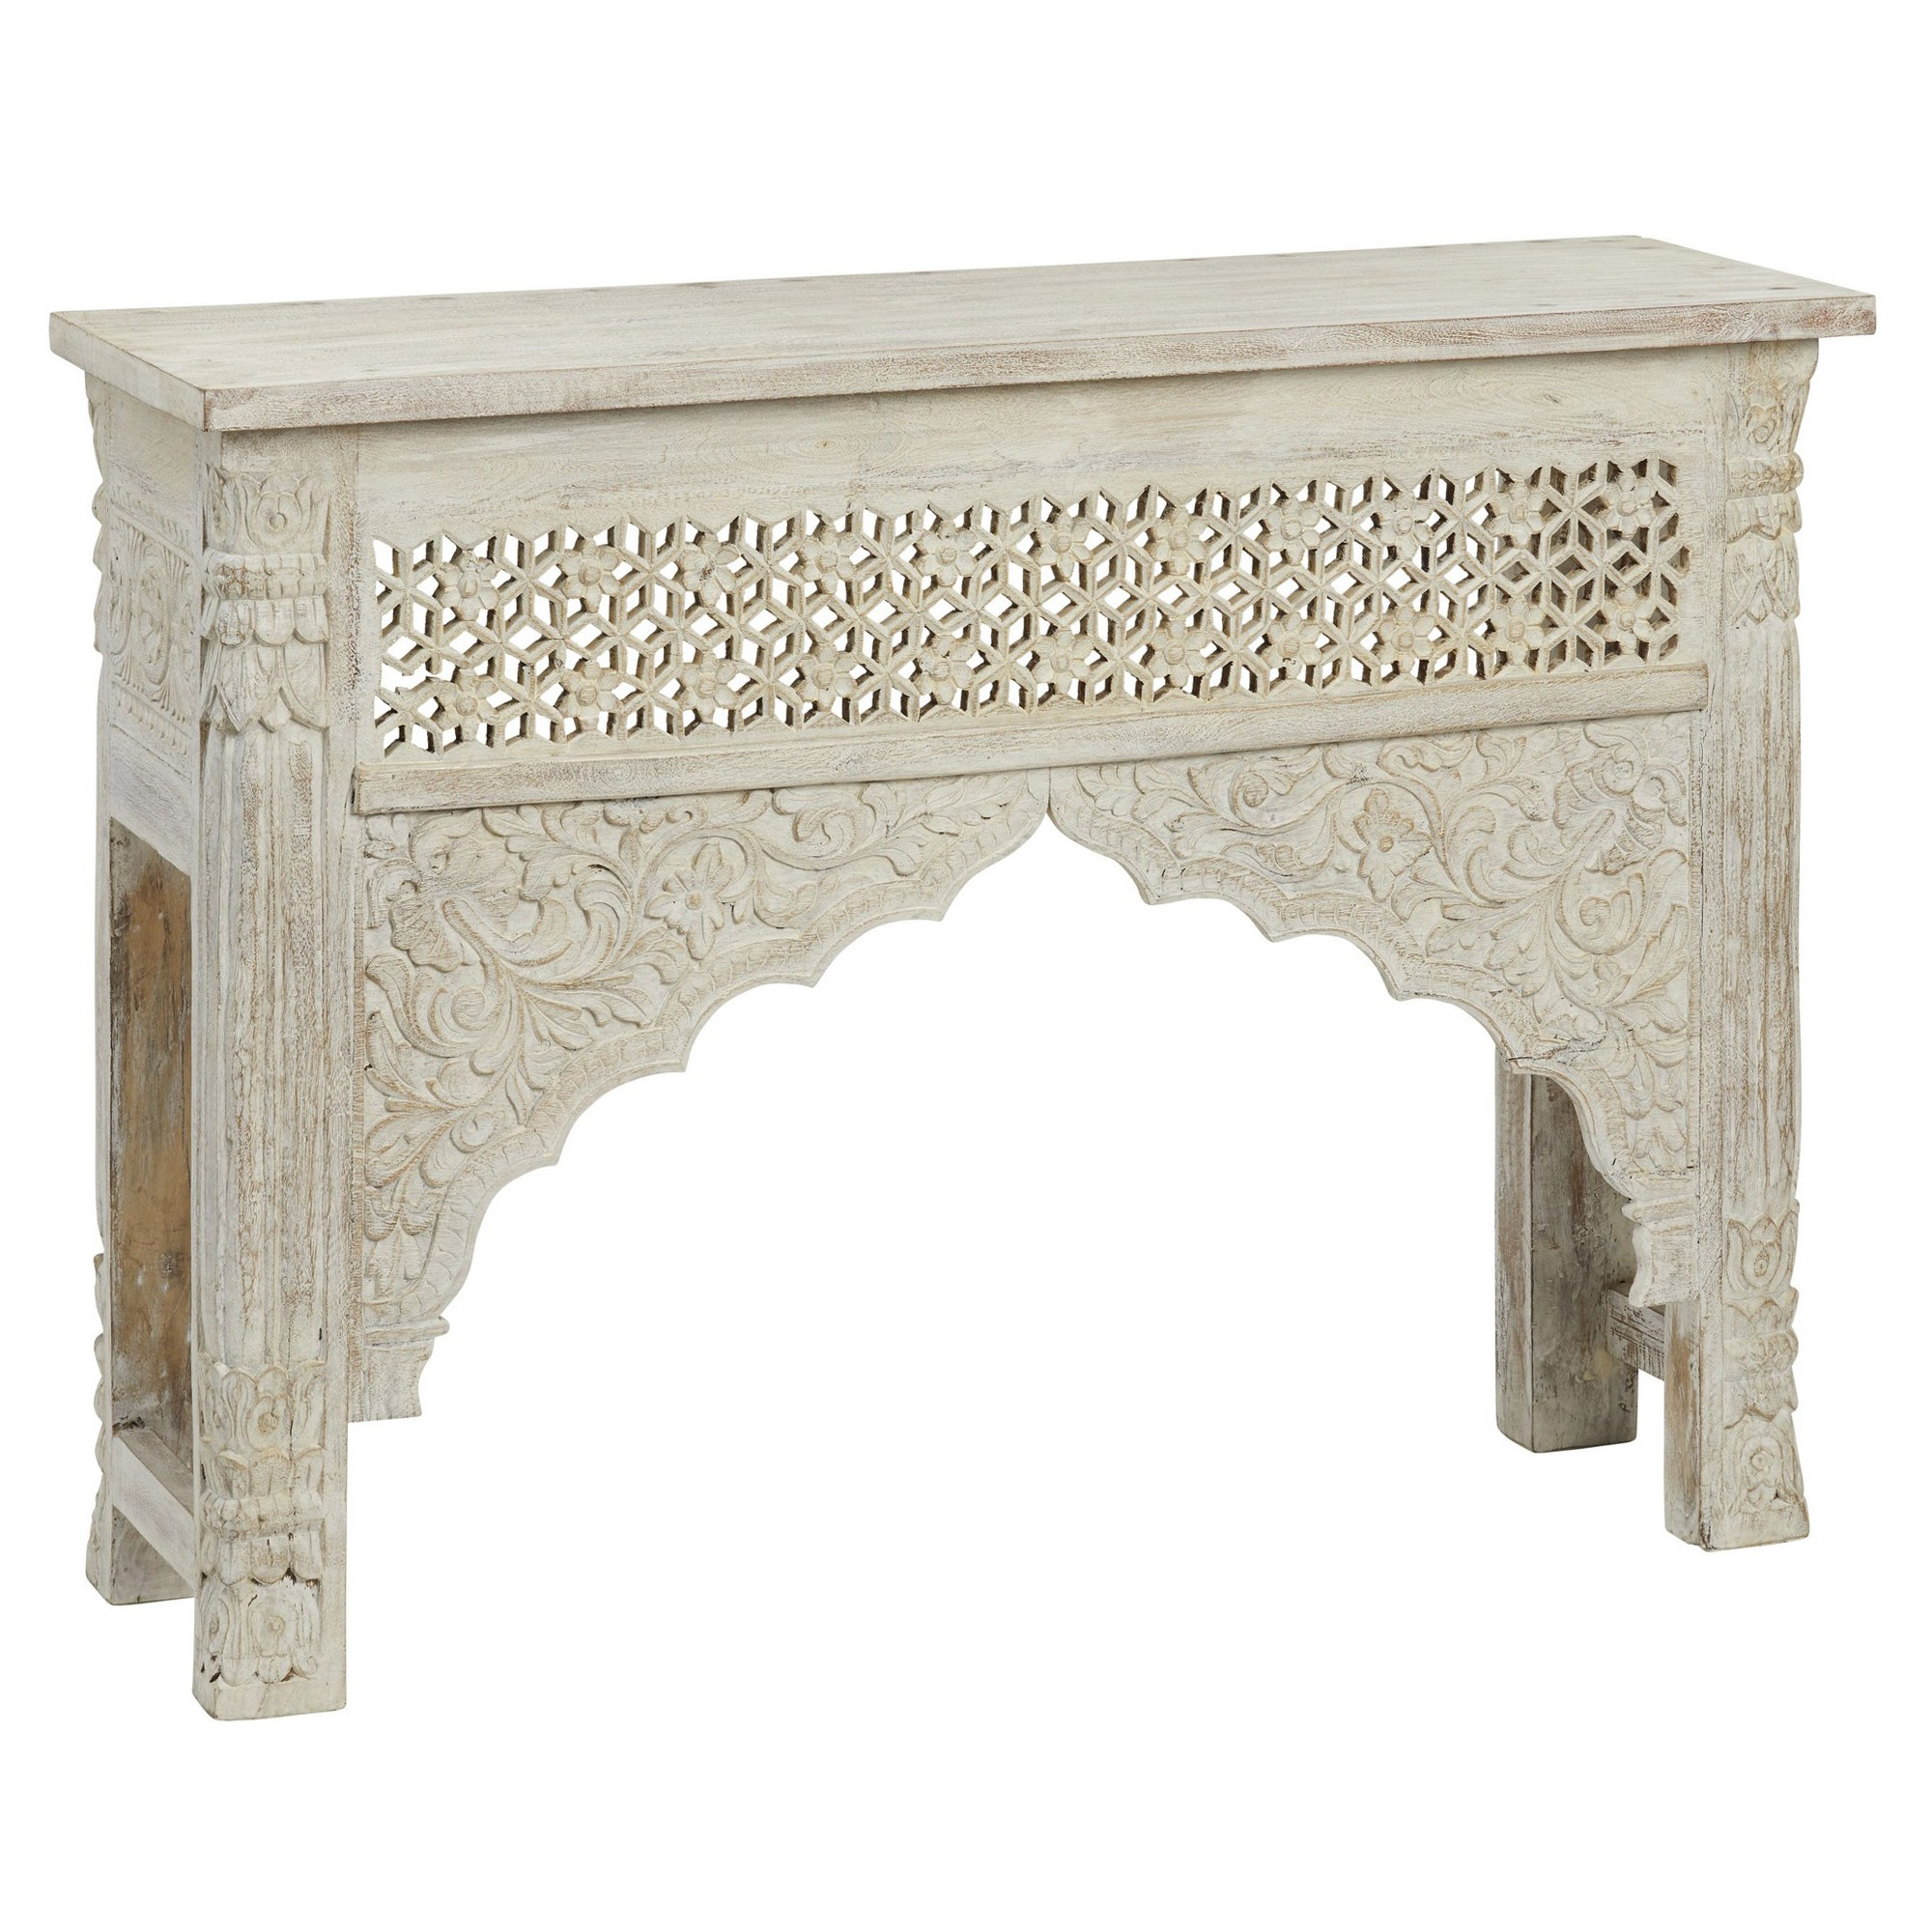 Ambala Mango Wood Console Table, 120cm